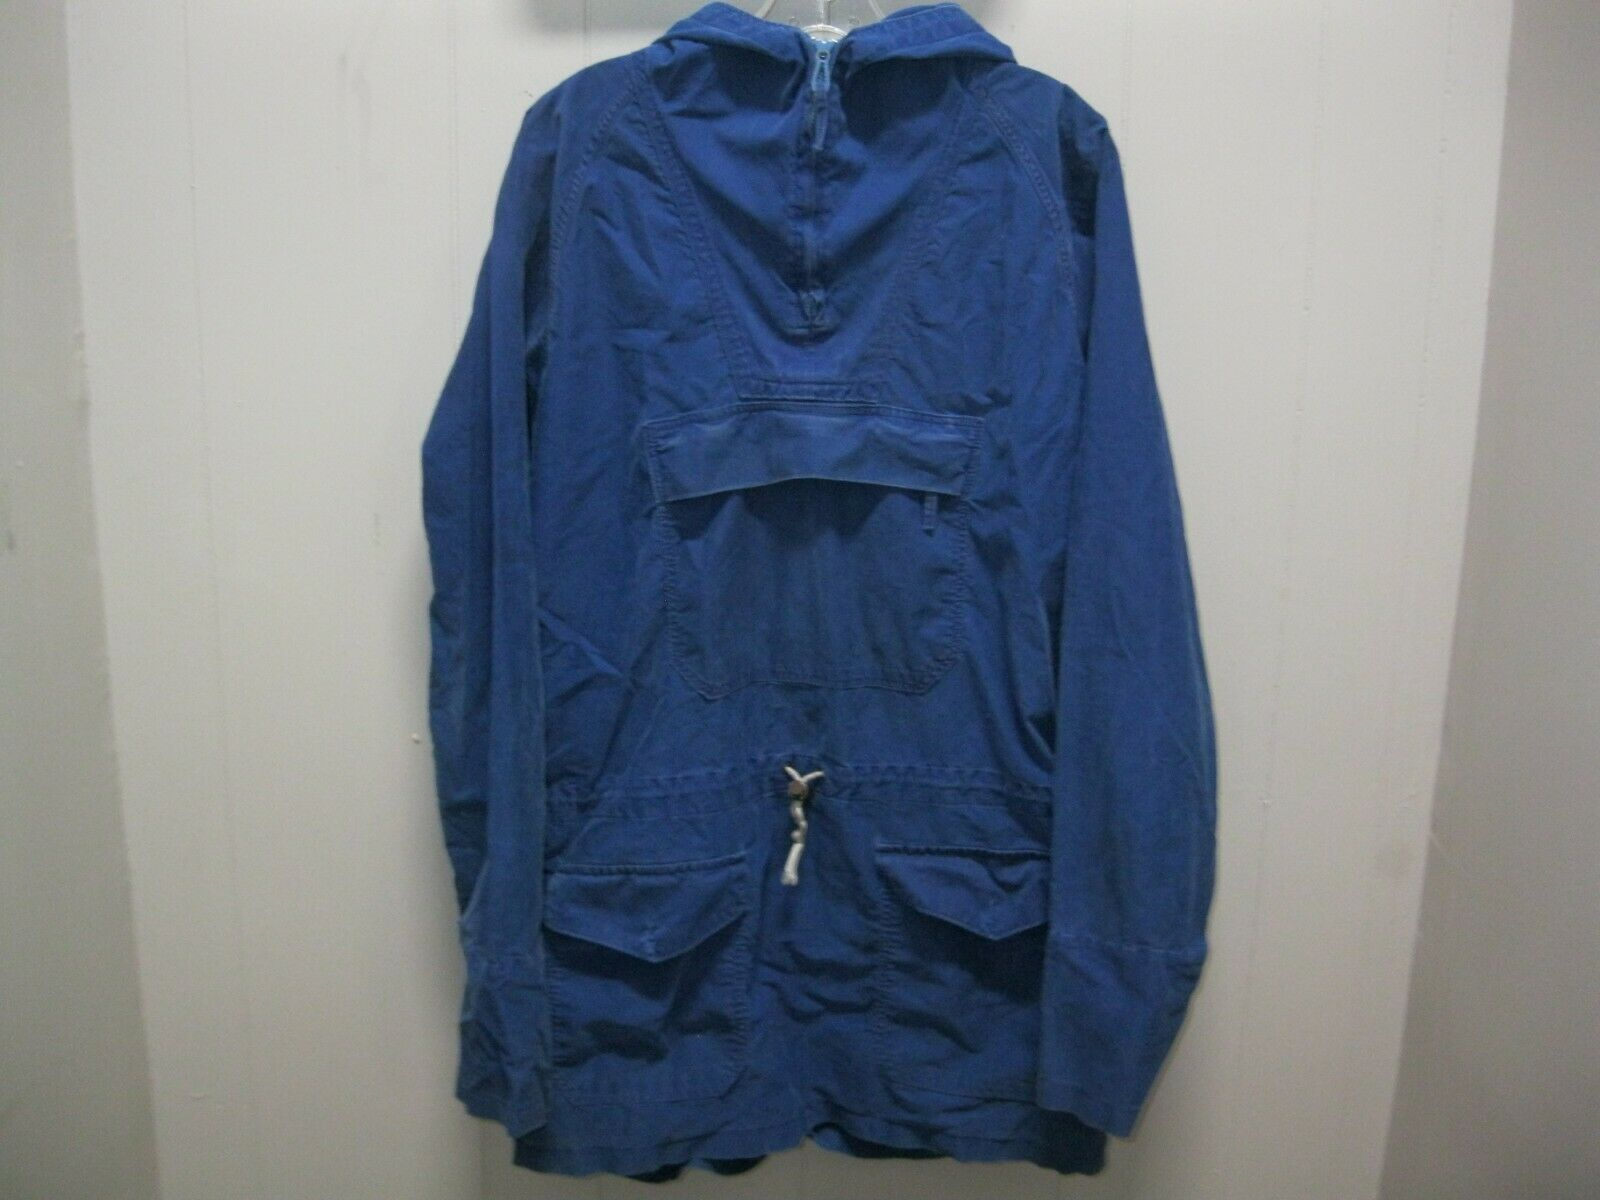 VINTAGE REI M/L Anorak Hooded Pullover Jacket Outdoor Unisex